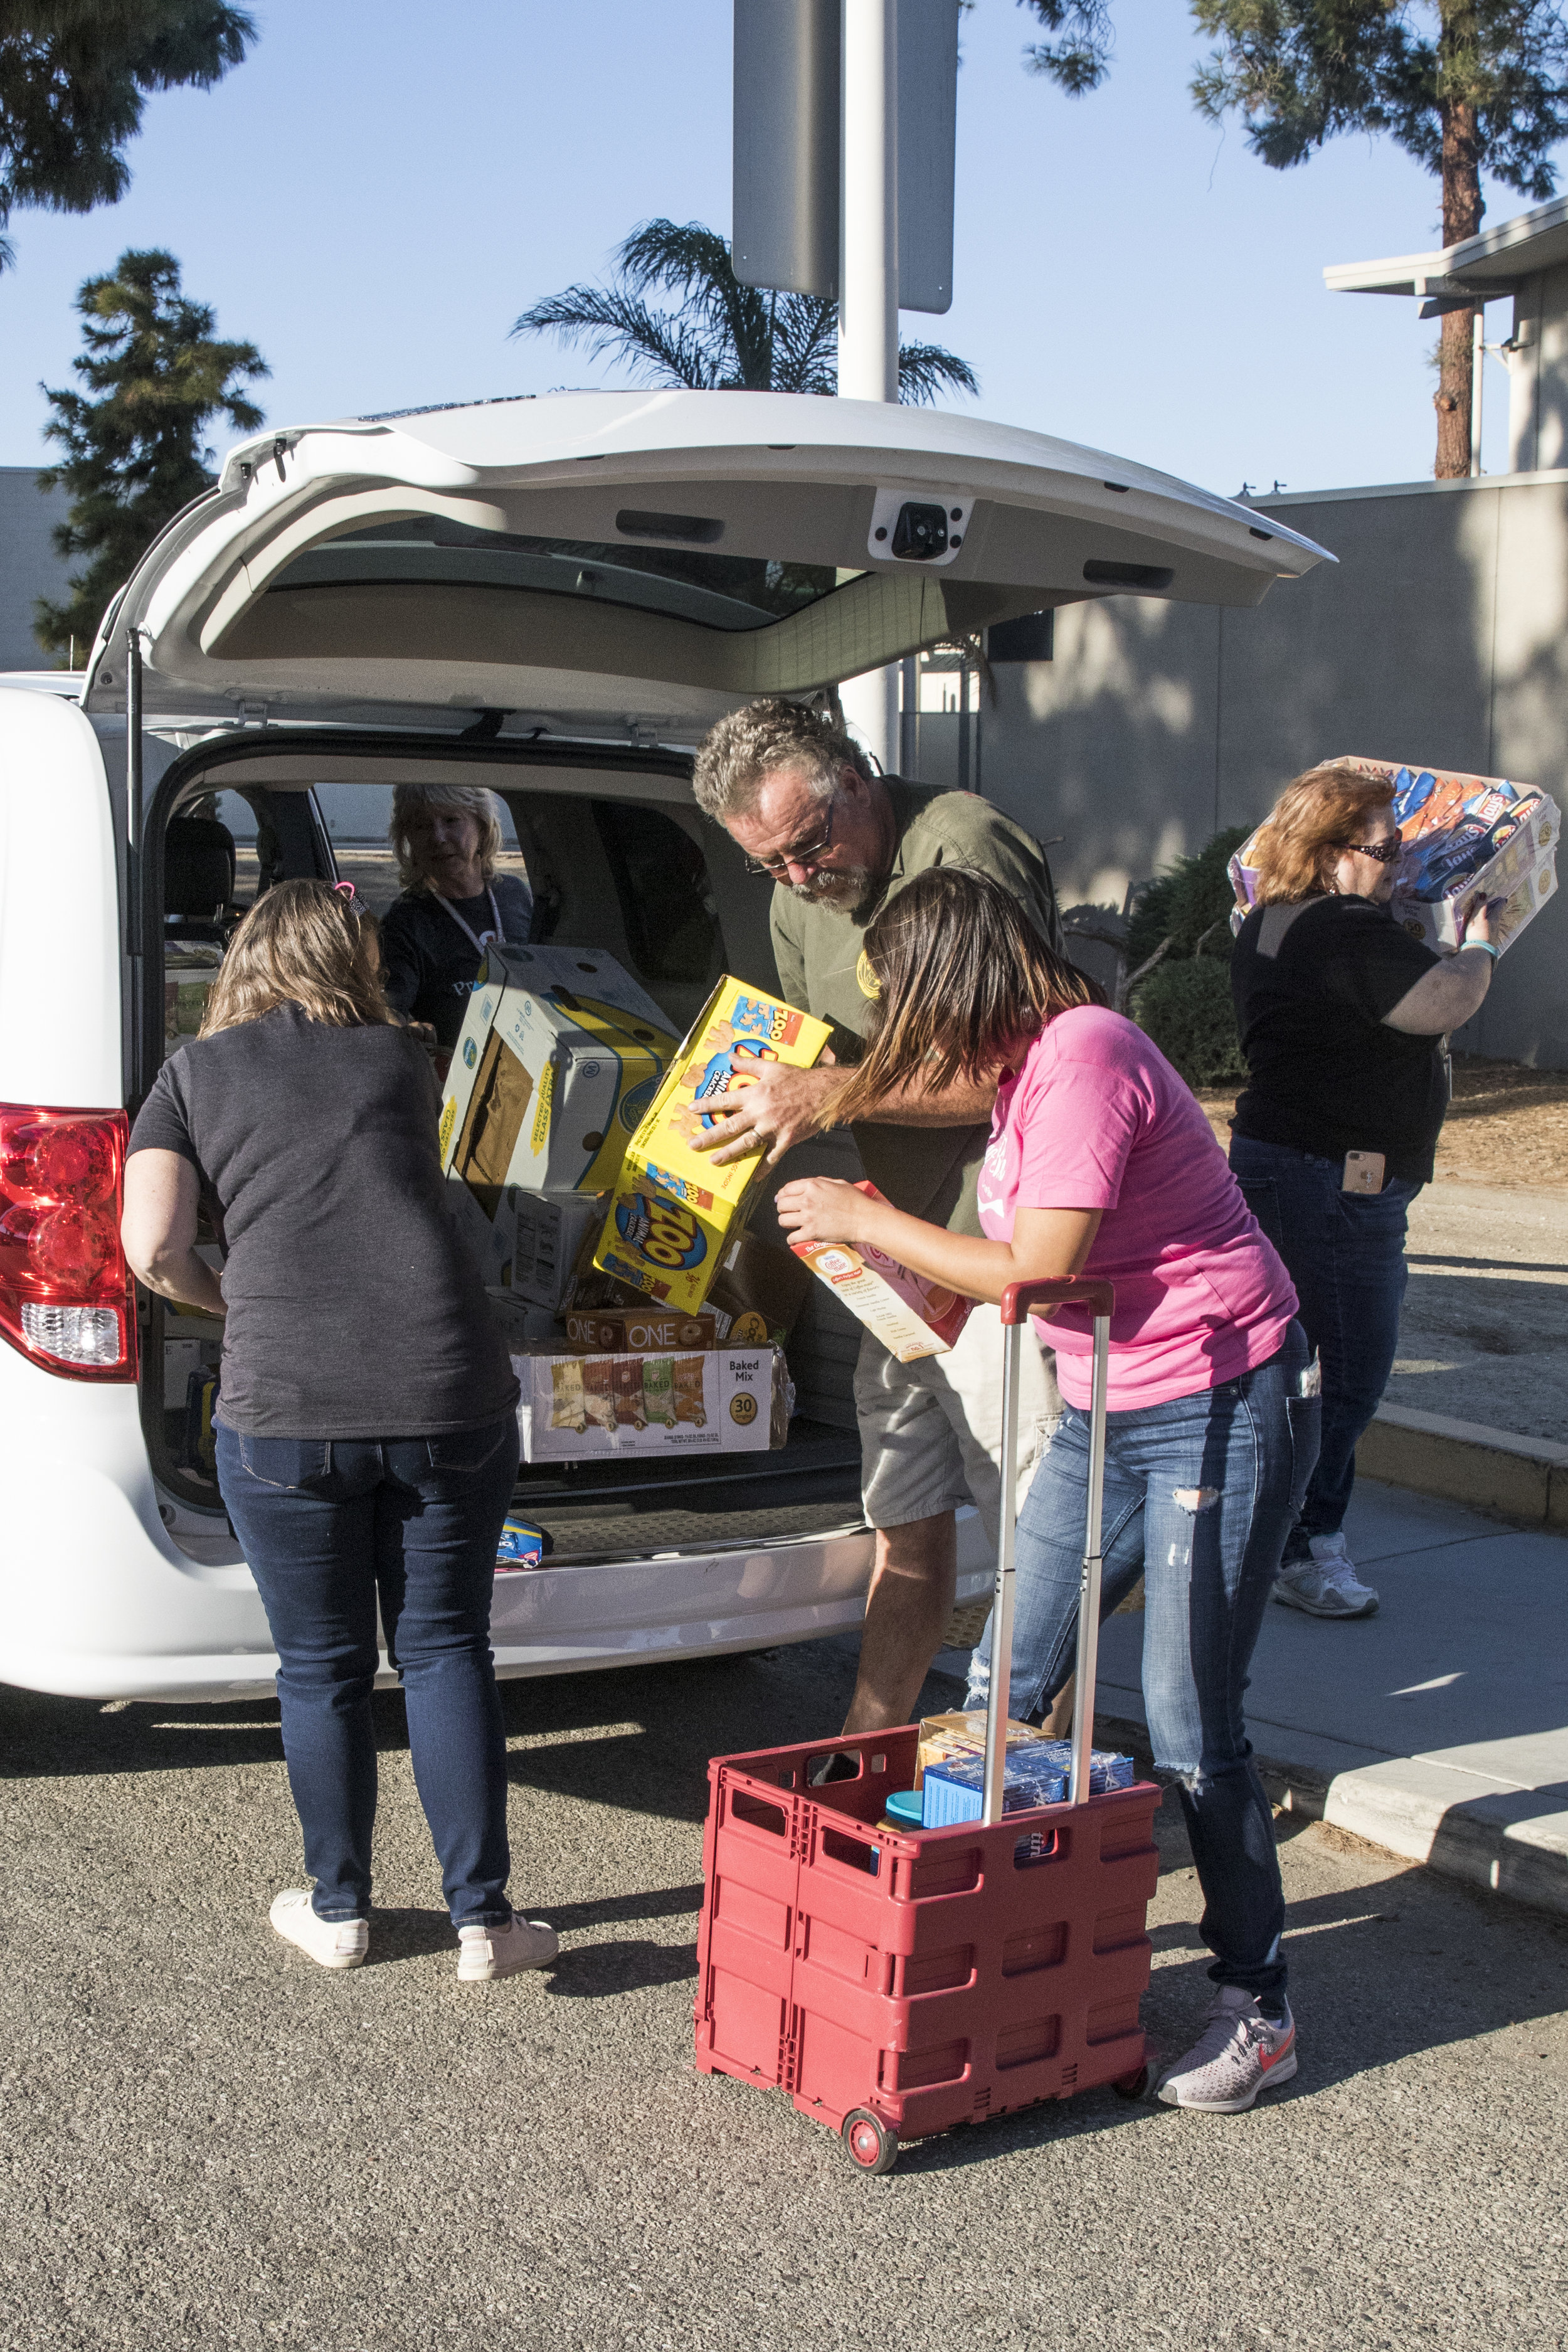 Pierce College employees and volunteers unload a car full of resources for evacuees of the Woolsey Fire who have taken refuge at Pierce College in Woodland HIlls, California on November 9, 2018. (Zane Meyer-Thornton/Corsair Photo)